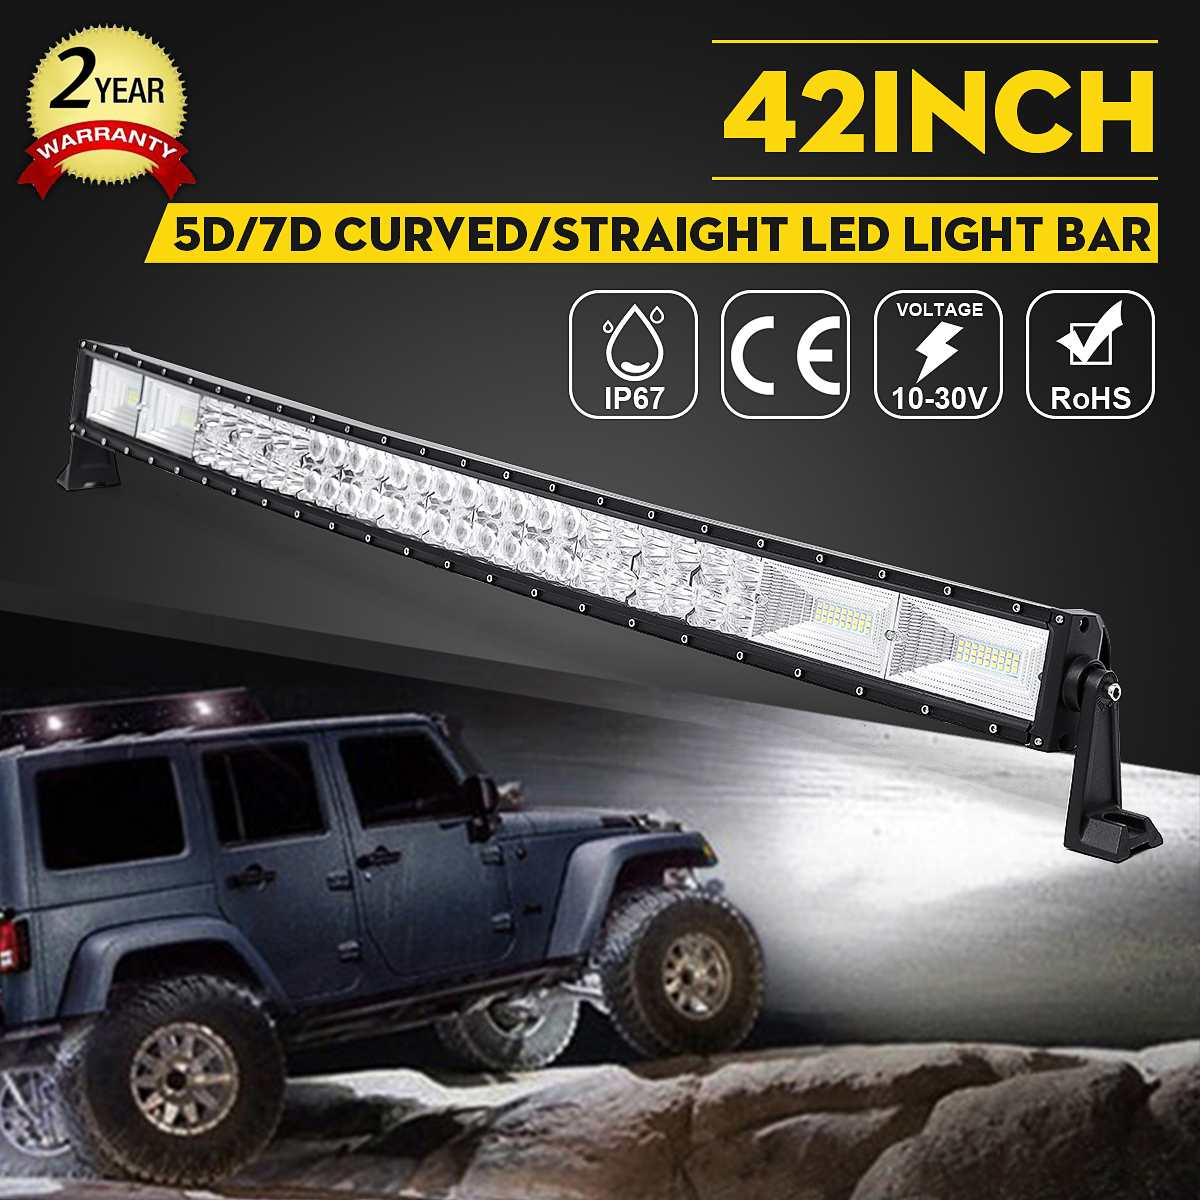 1400W 42 Inch 5D Curved LED Work Light Bar Combo Offroad Driving Lamp 6000K Waterproof LED Light Bar For SUV ATV Car Truck image